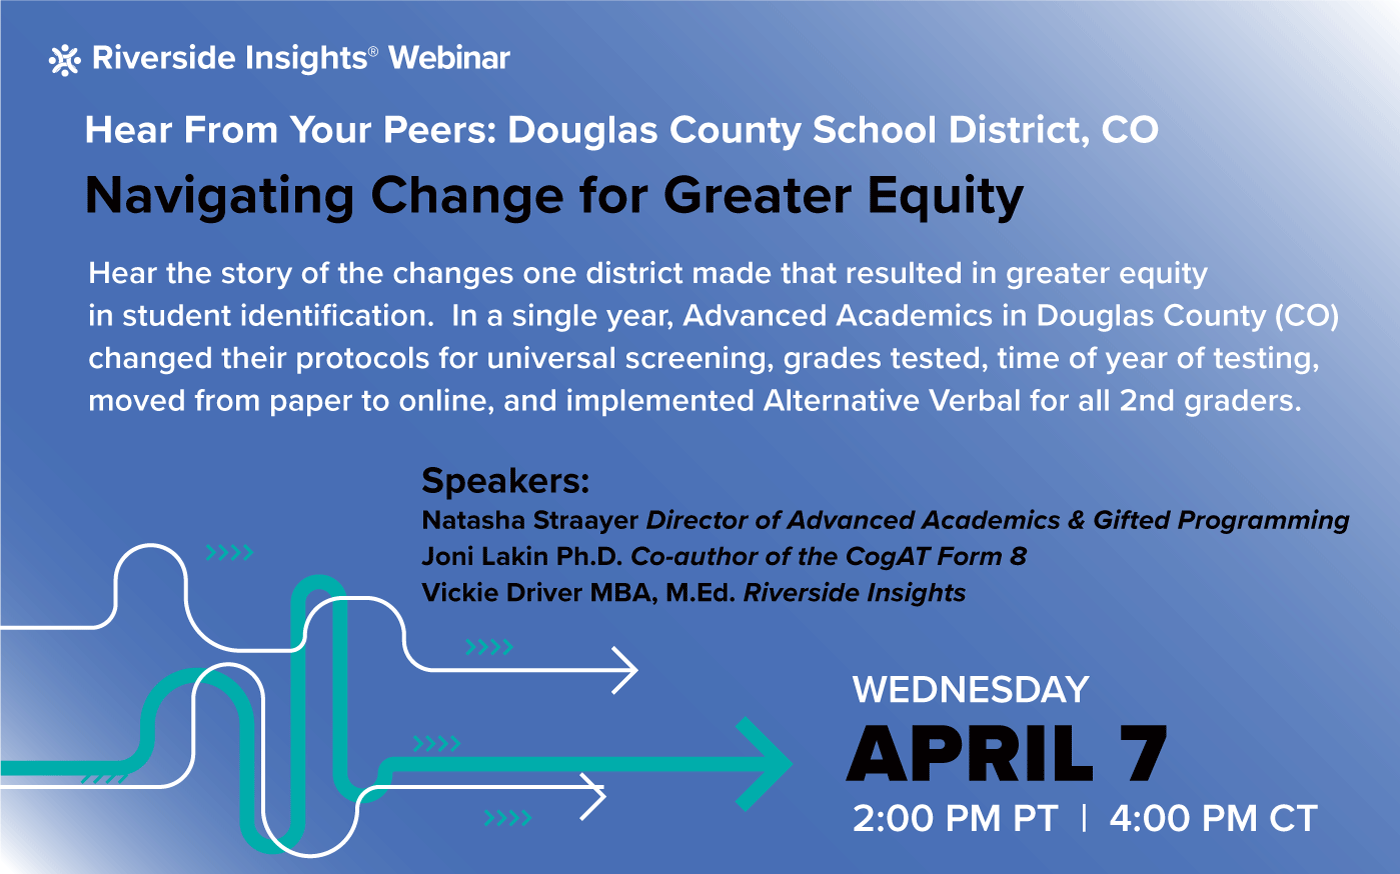 Hear from you Peers: Navigating Change for Greater Equity